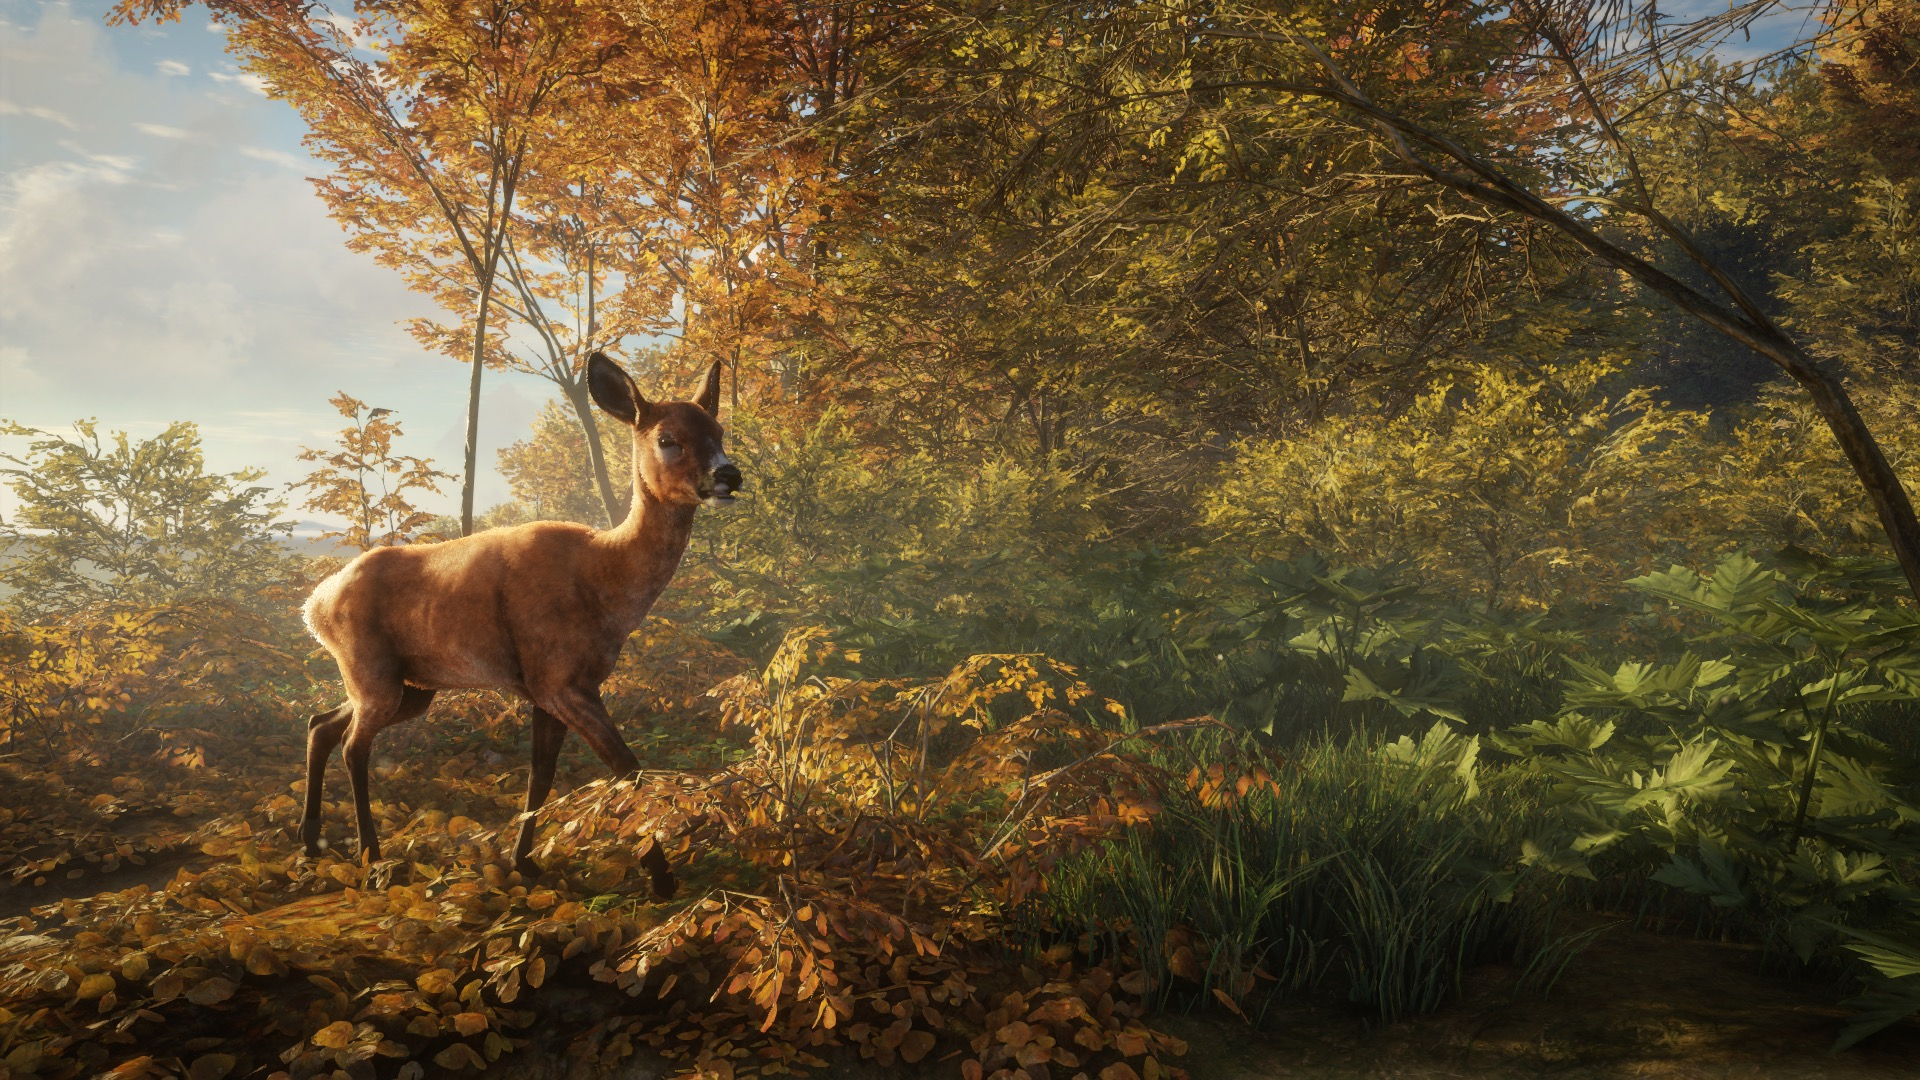 astragon Entertainment theHunter Call of the Wild Jagdspiel Videospiel Spiel PC Game Jagd Jagen Jäger Hunter